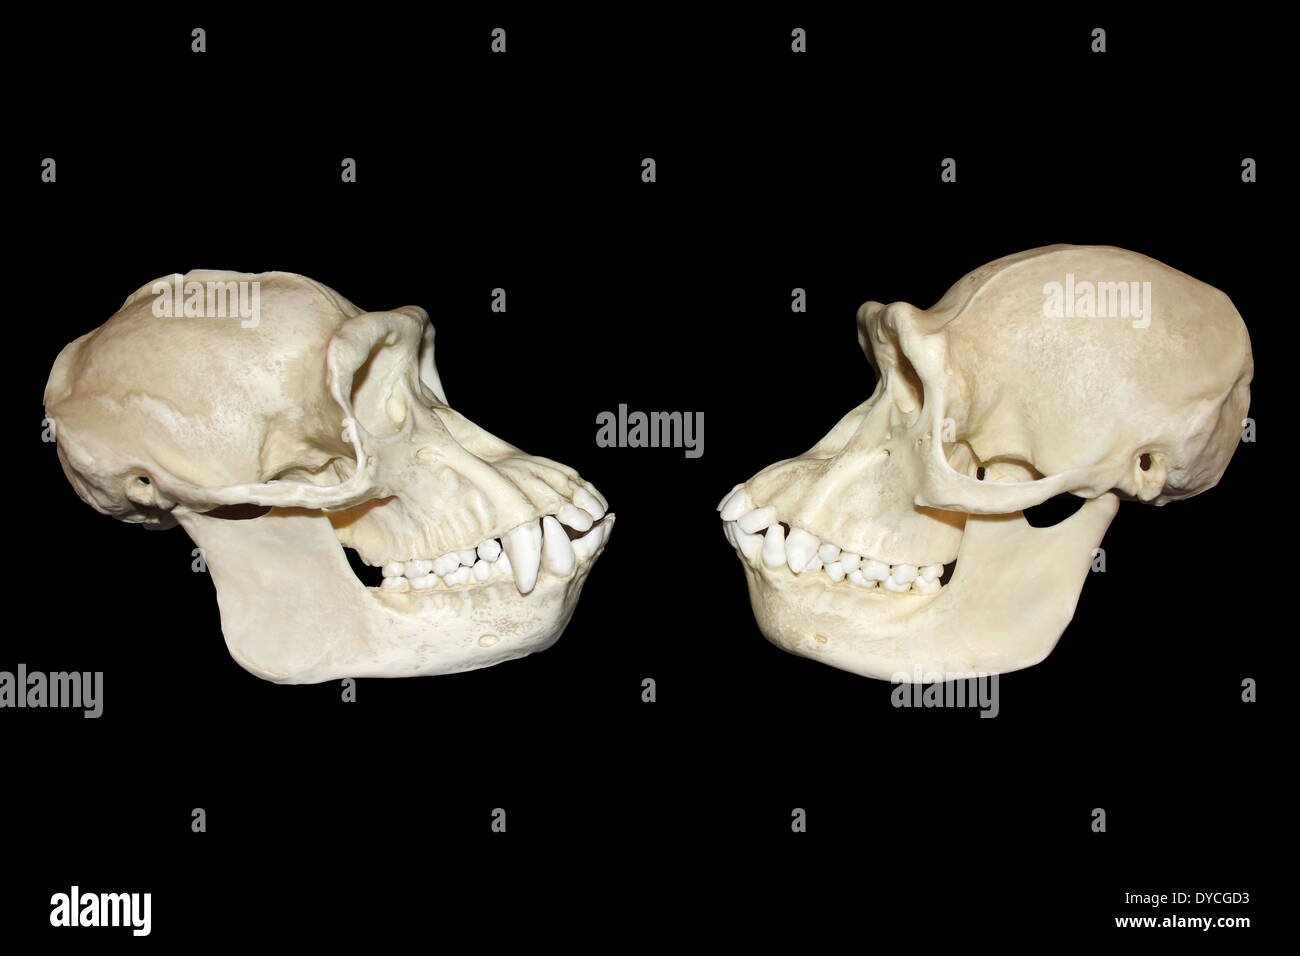 Side View Comparison Between Male And Female Chimpanzee Skulls - Stock Image